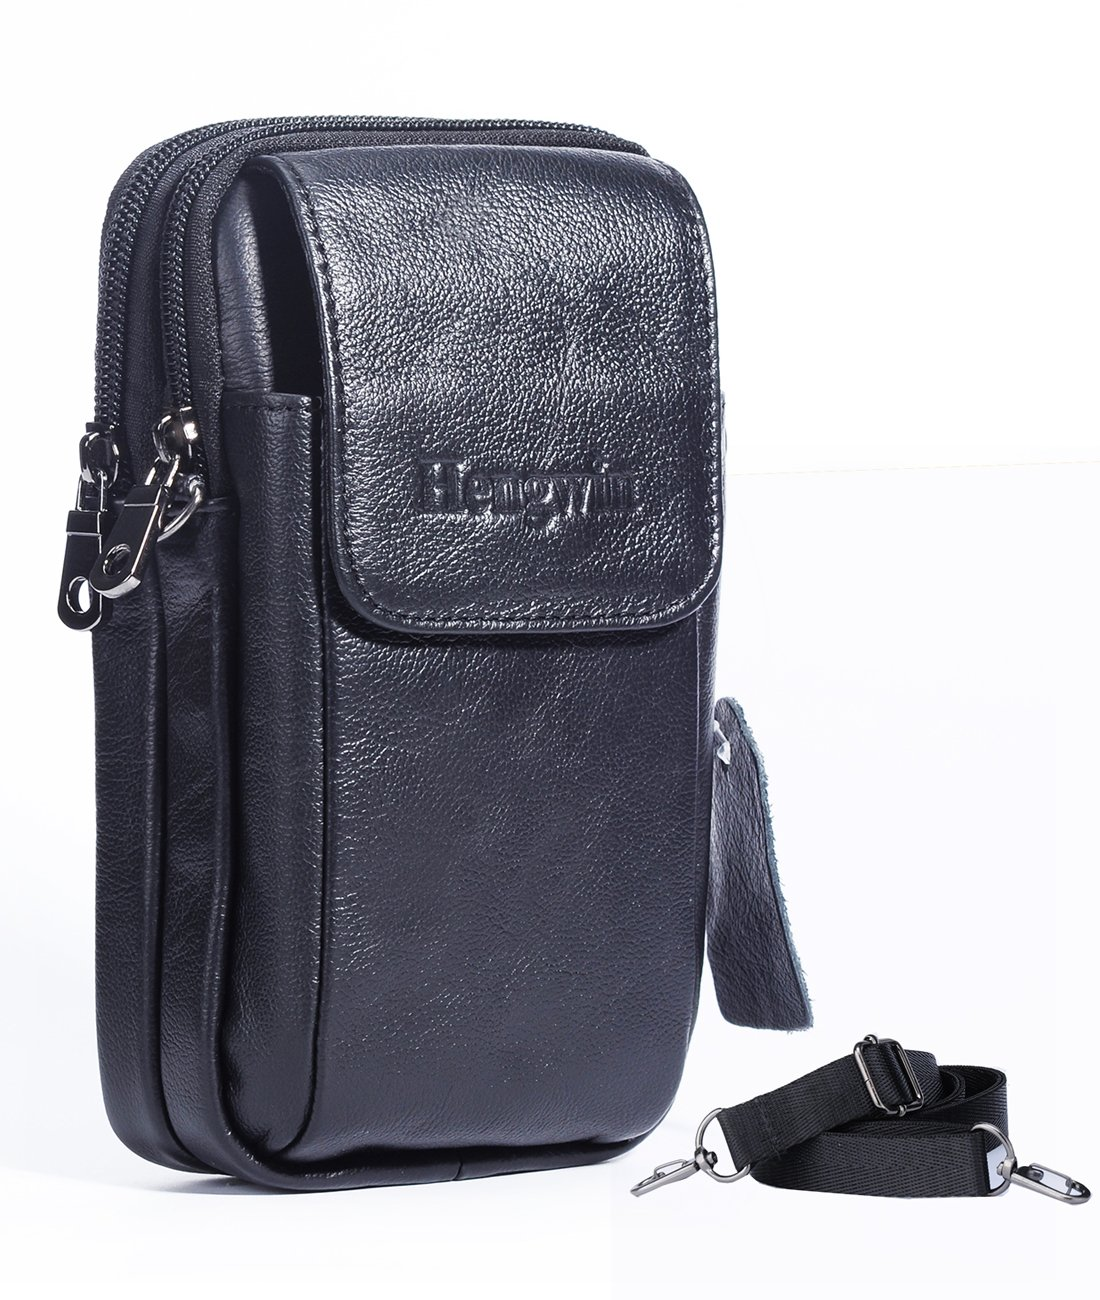 Hengwin Leather Vertical Men Cellphone Belt Loop Holster Case Belt Waist Bag Mini Travel Messager Pouch Crossbody Pack Purse Wallet with a Clip iPhone 8 Plus 7 Plus Note 8 S8 Edge Plus+Keychain-Black by Hengwin